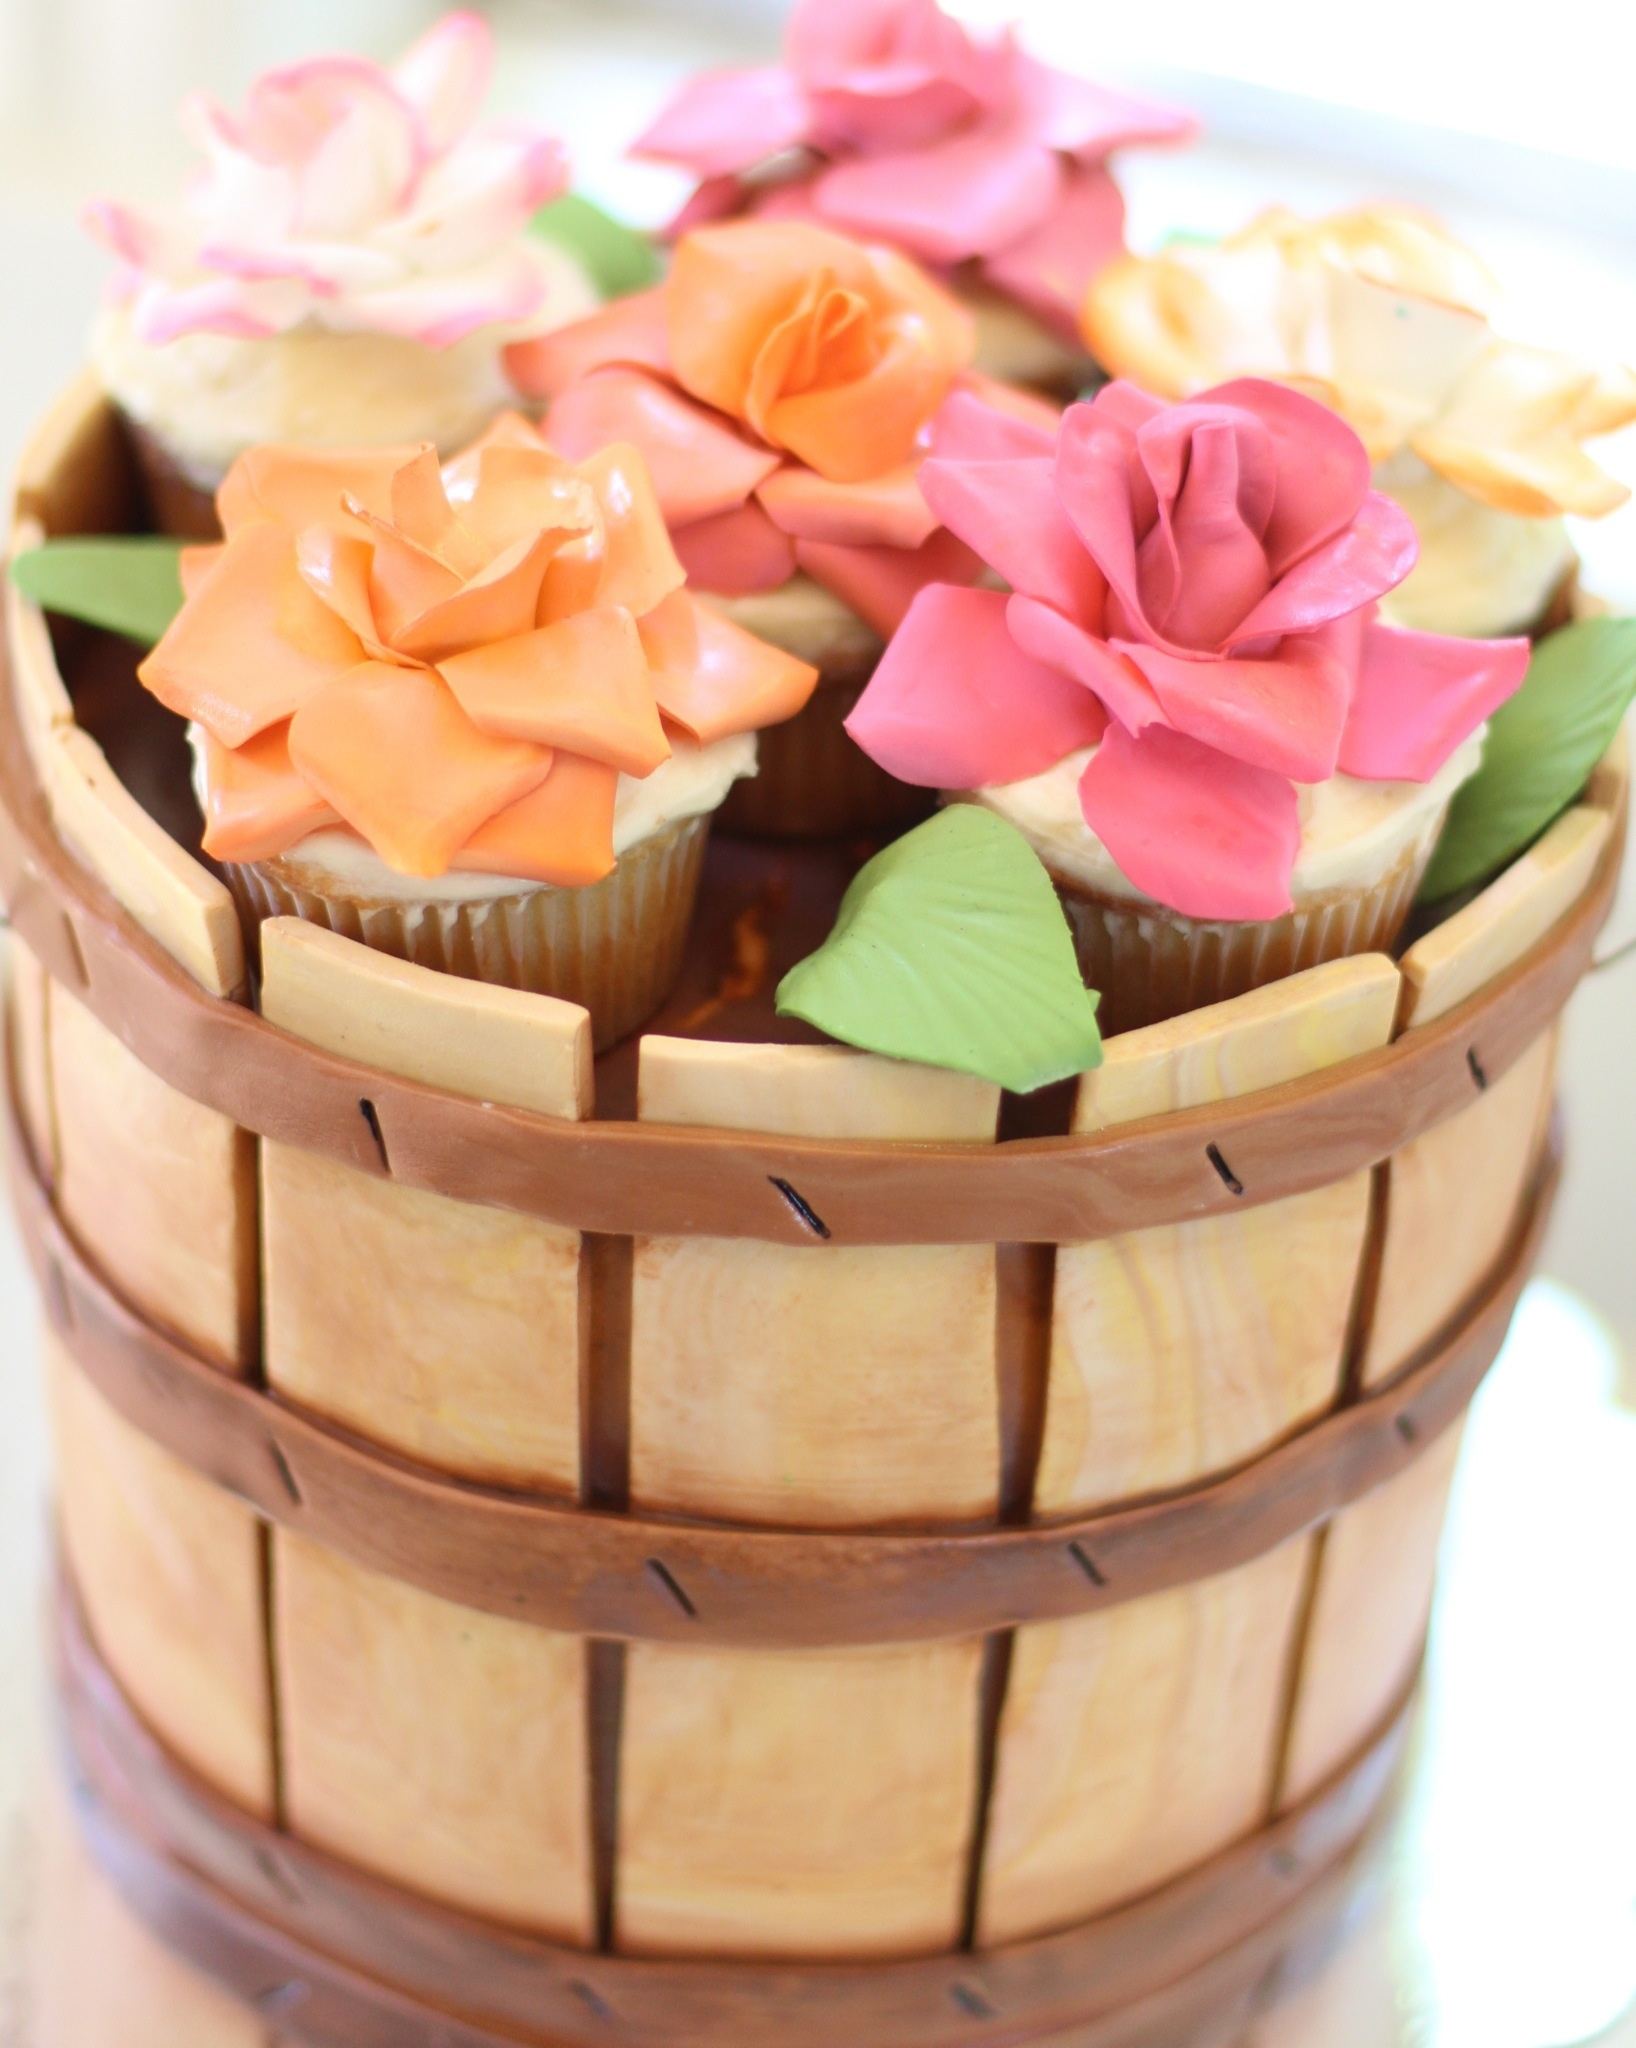 Wooden Basket And Flower Cupcake Cake Modeling Chocolate And Hand ...